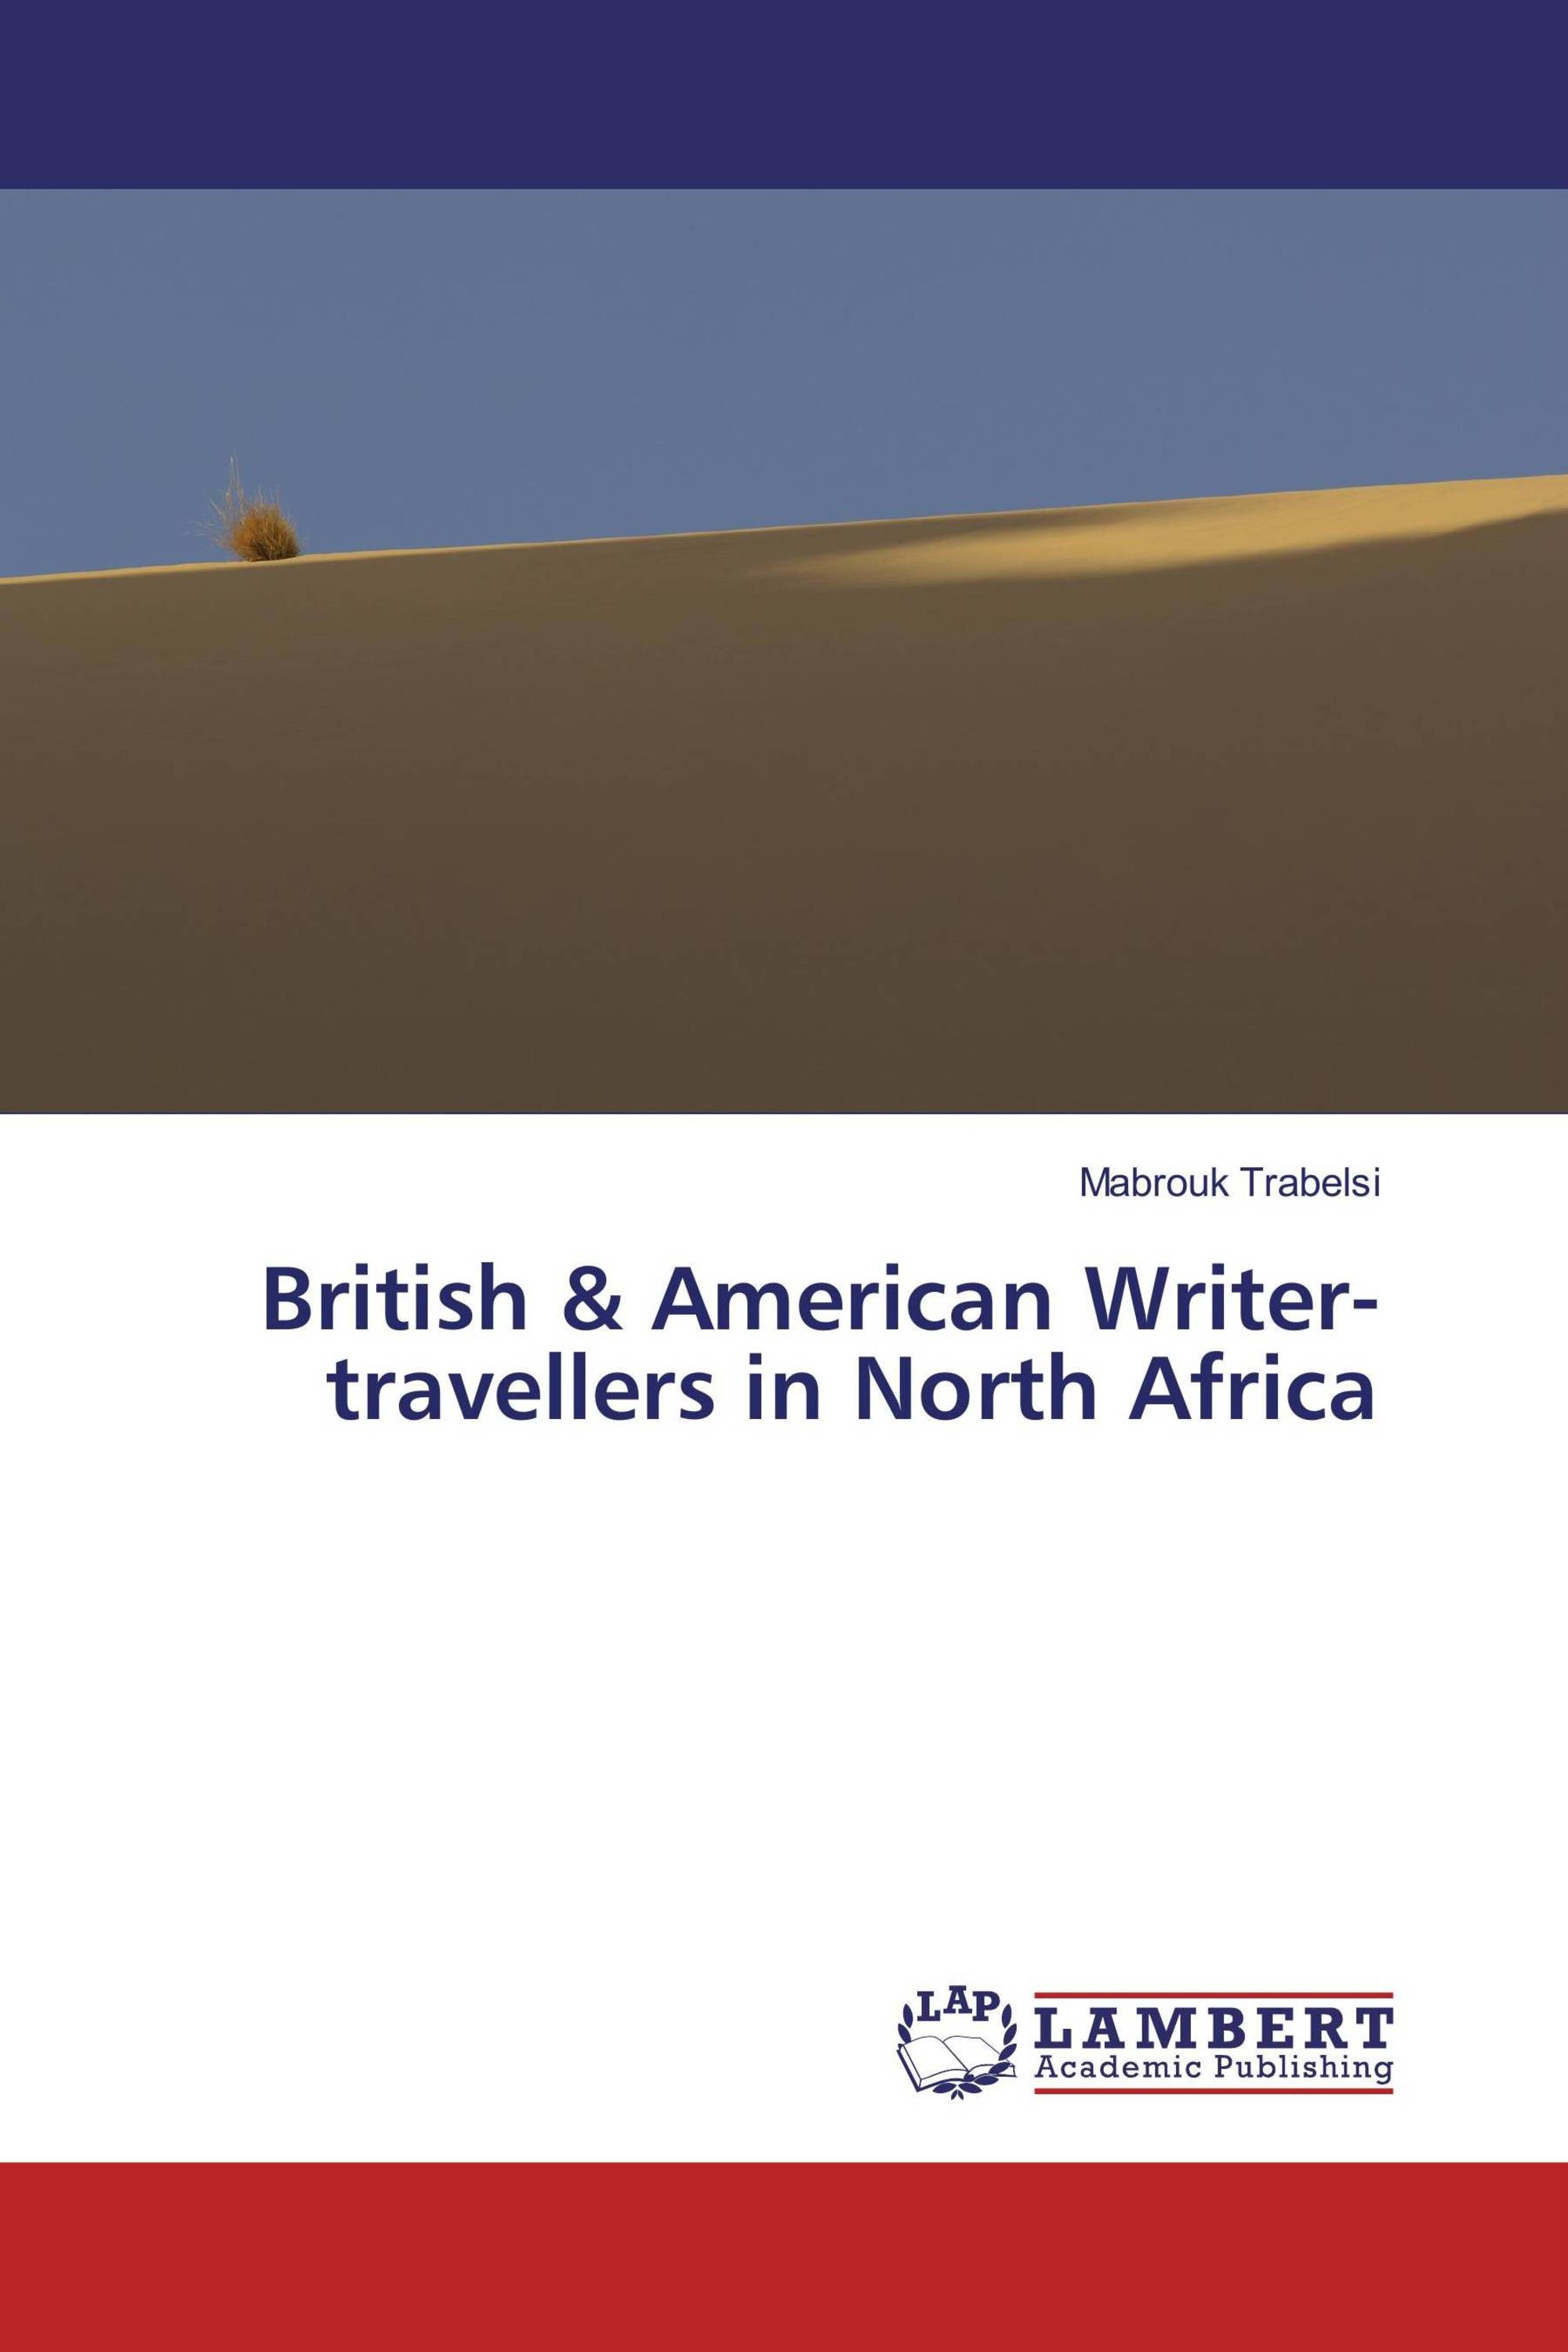 British & American Writer-travellers in North Africa